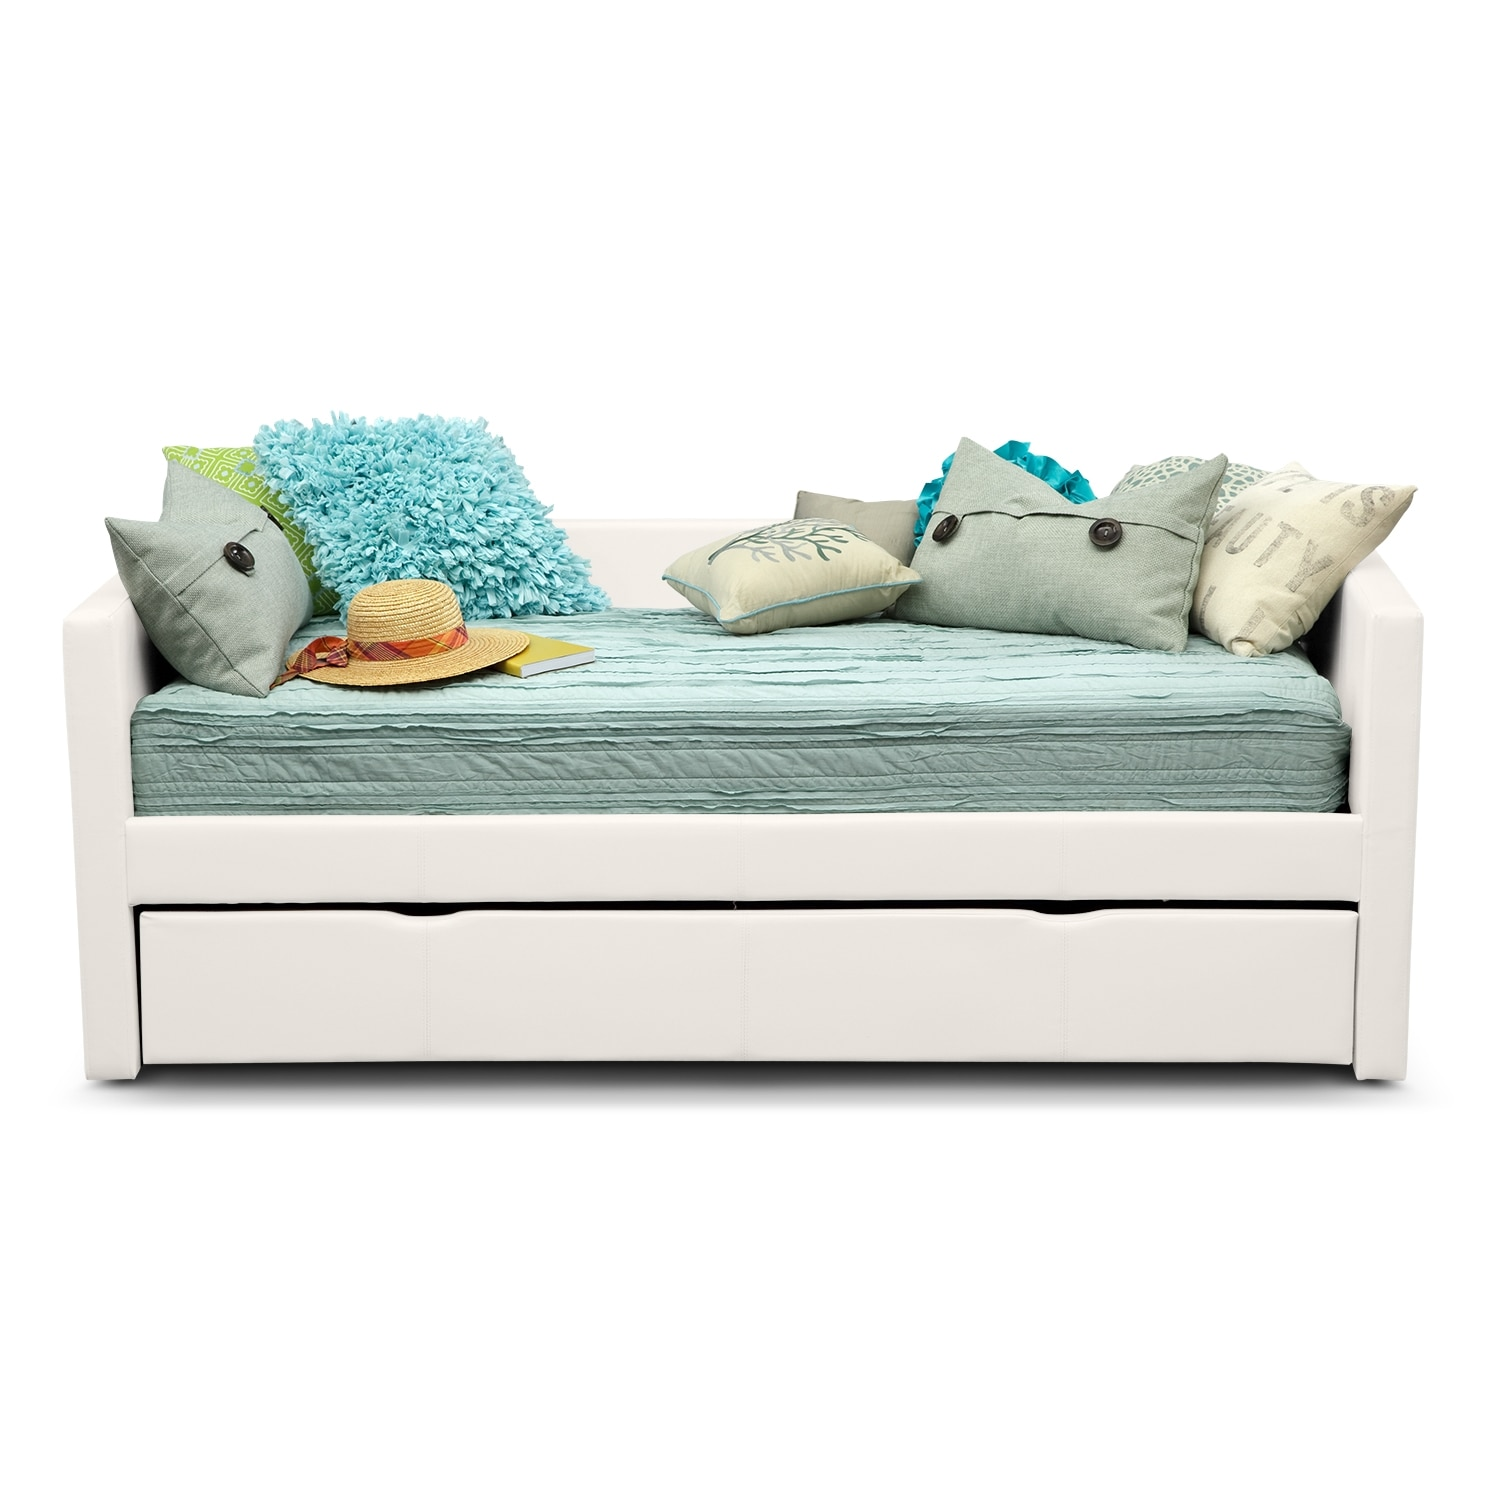 Carey twin daybed with trundle white american for Bedroom sets with mattress included